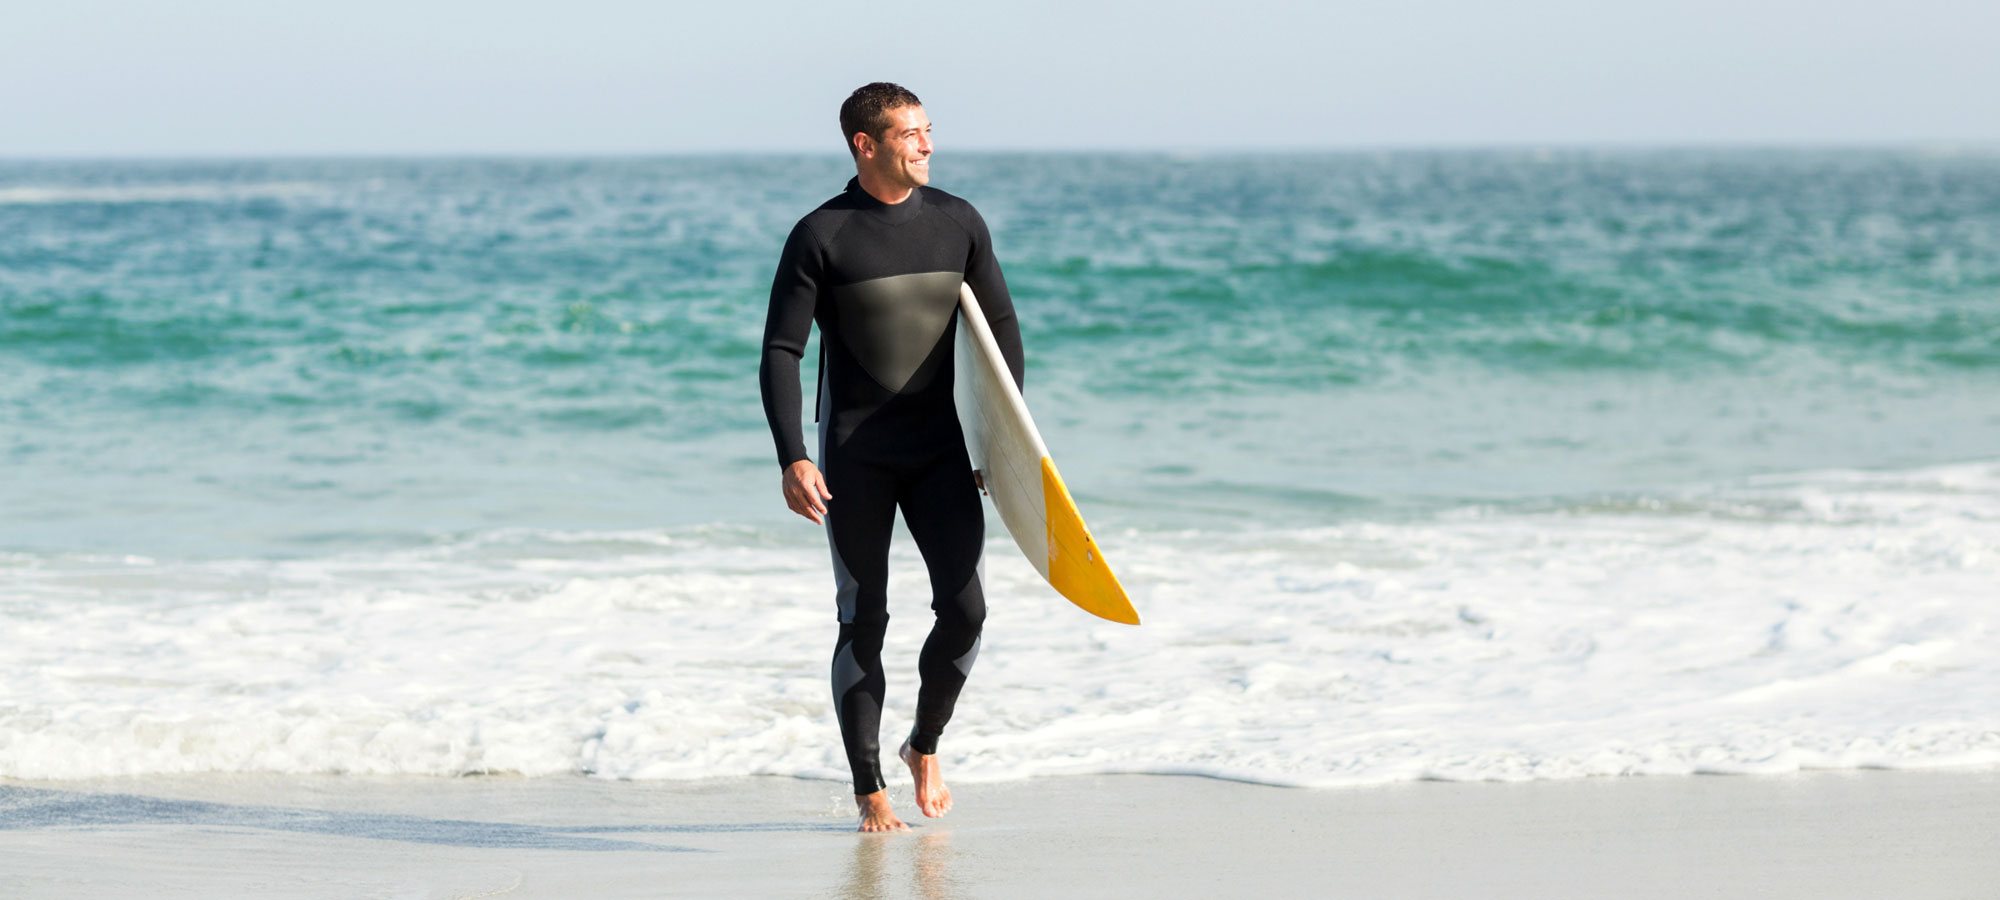 surfing-wetsuit